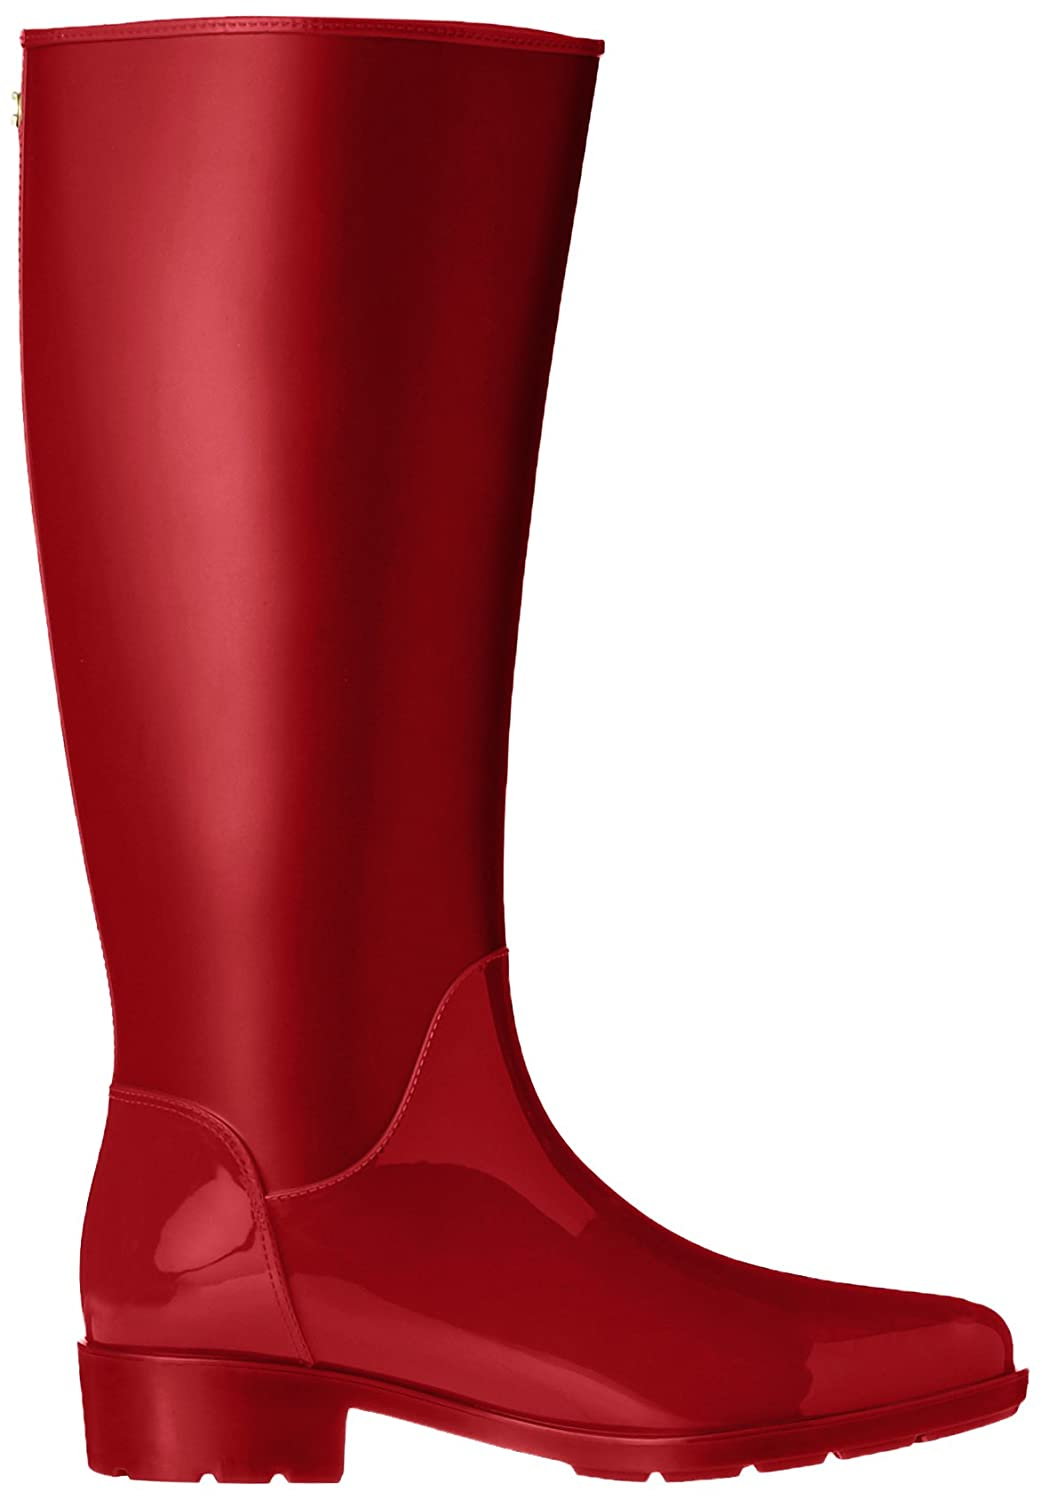 Sam Edelman Women's Sydney Rain Boot B01M5DNKLX 10 B(M) US|Chili Pepper Red